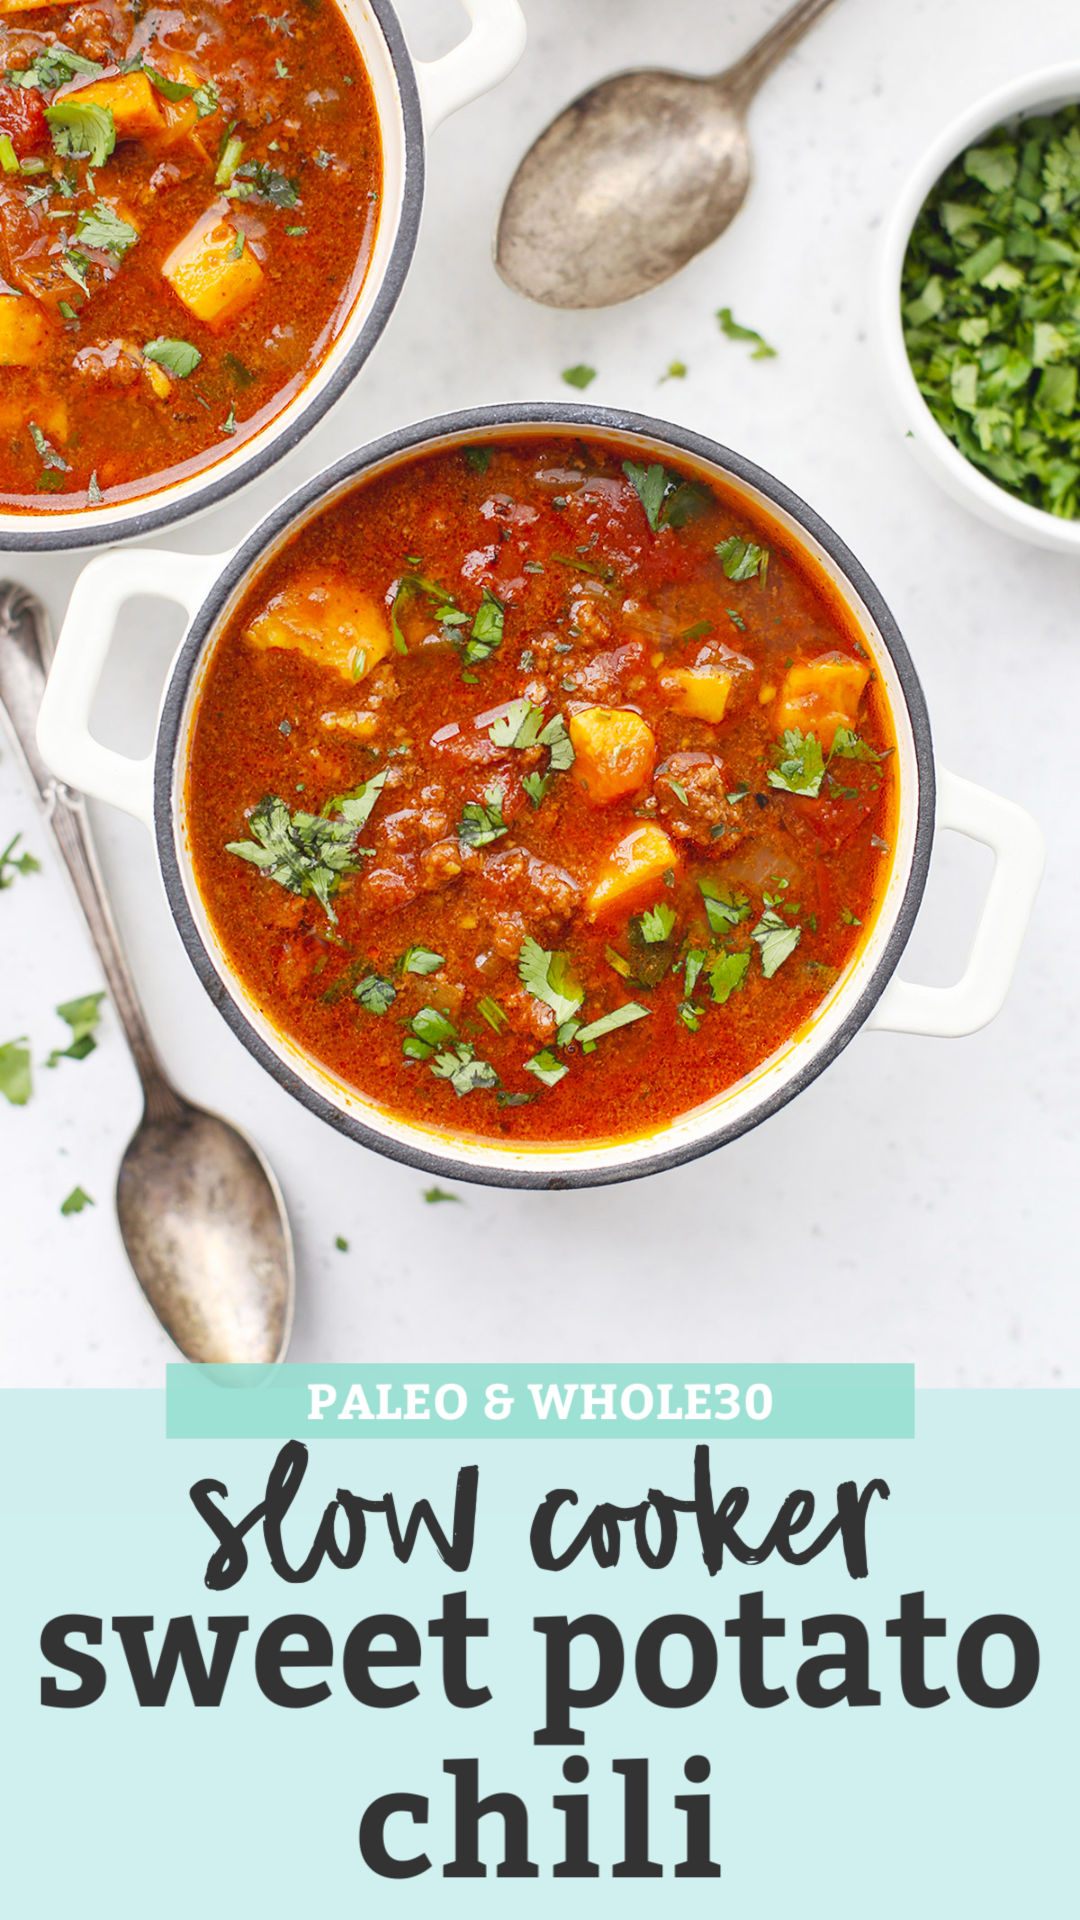 Paleo Slow Cooker Sweet Potato Chili from One Lovely Life